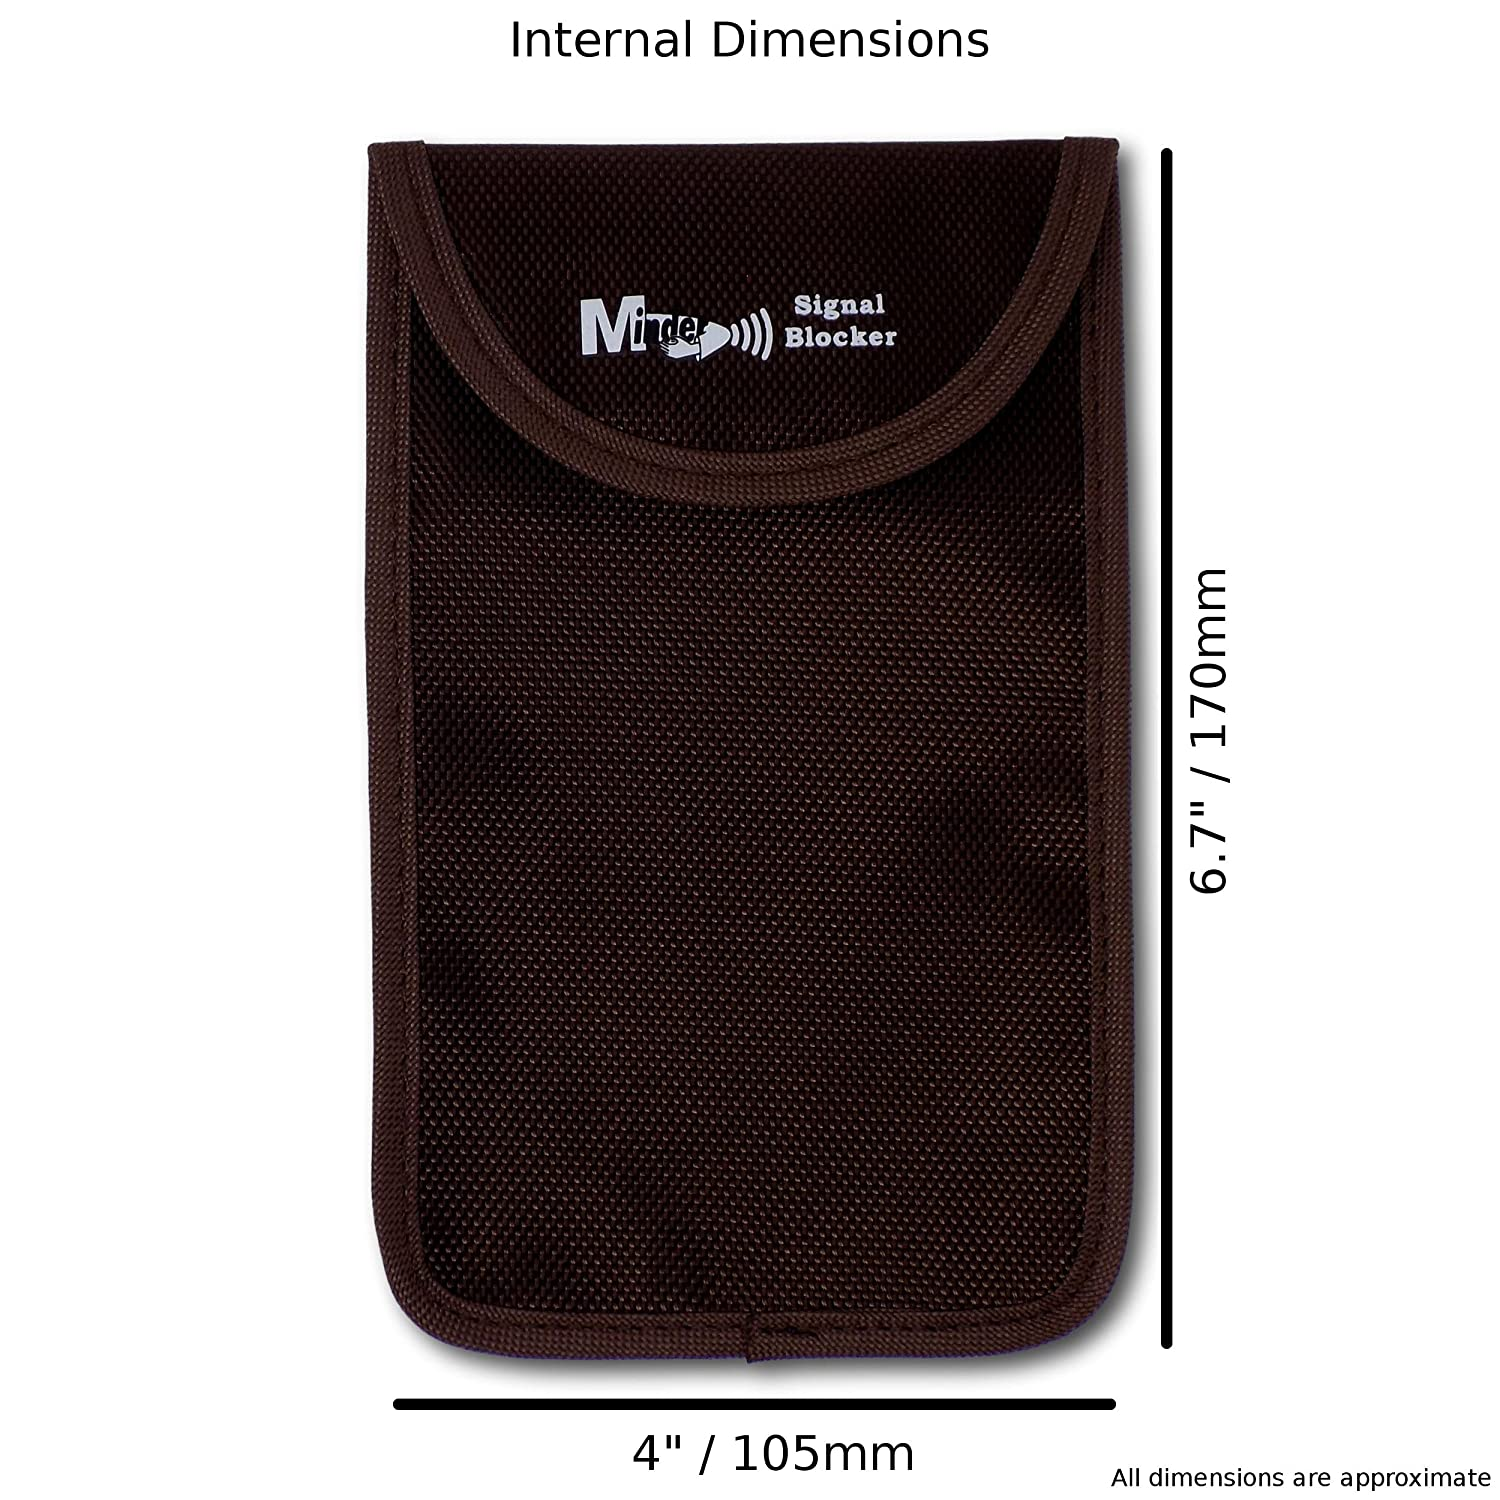 Signal Jamming Case with RFID Blocking Pouch for Keyless Entry//Start Car Keys and Mobile Phones Mini Brown Minder Signal Blocker Faraday Bag Protection Security for WIFI//GSM//LTE//NFC//RFID